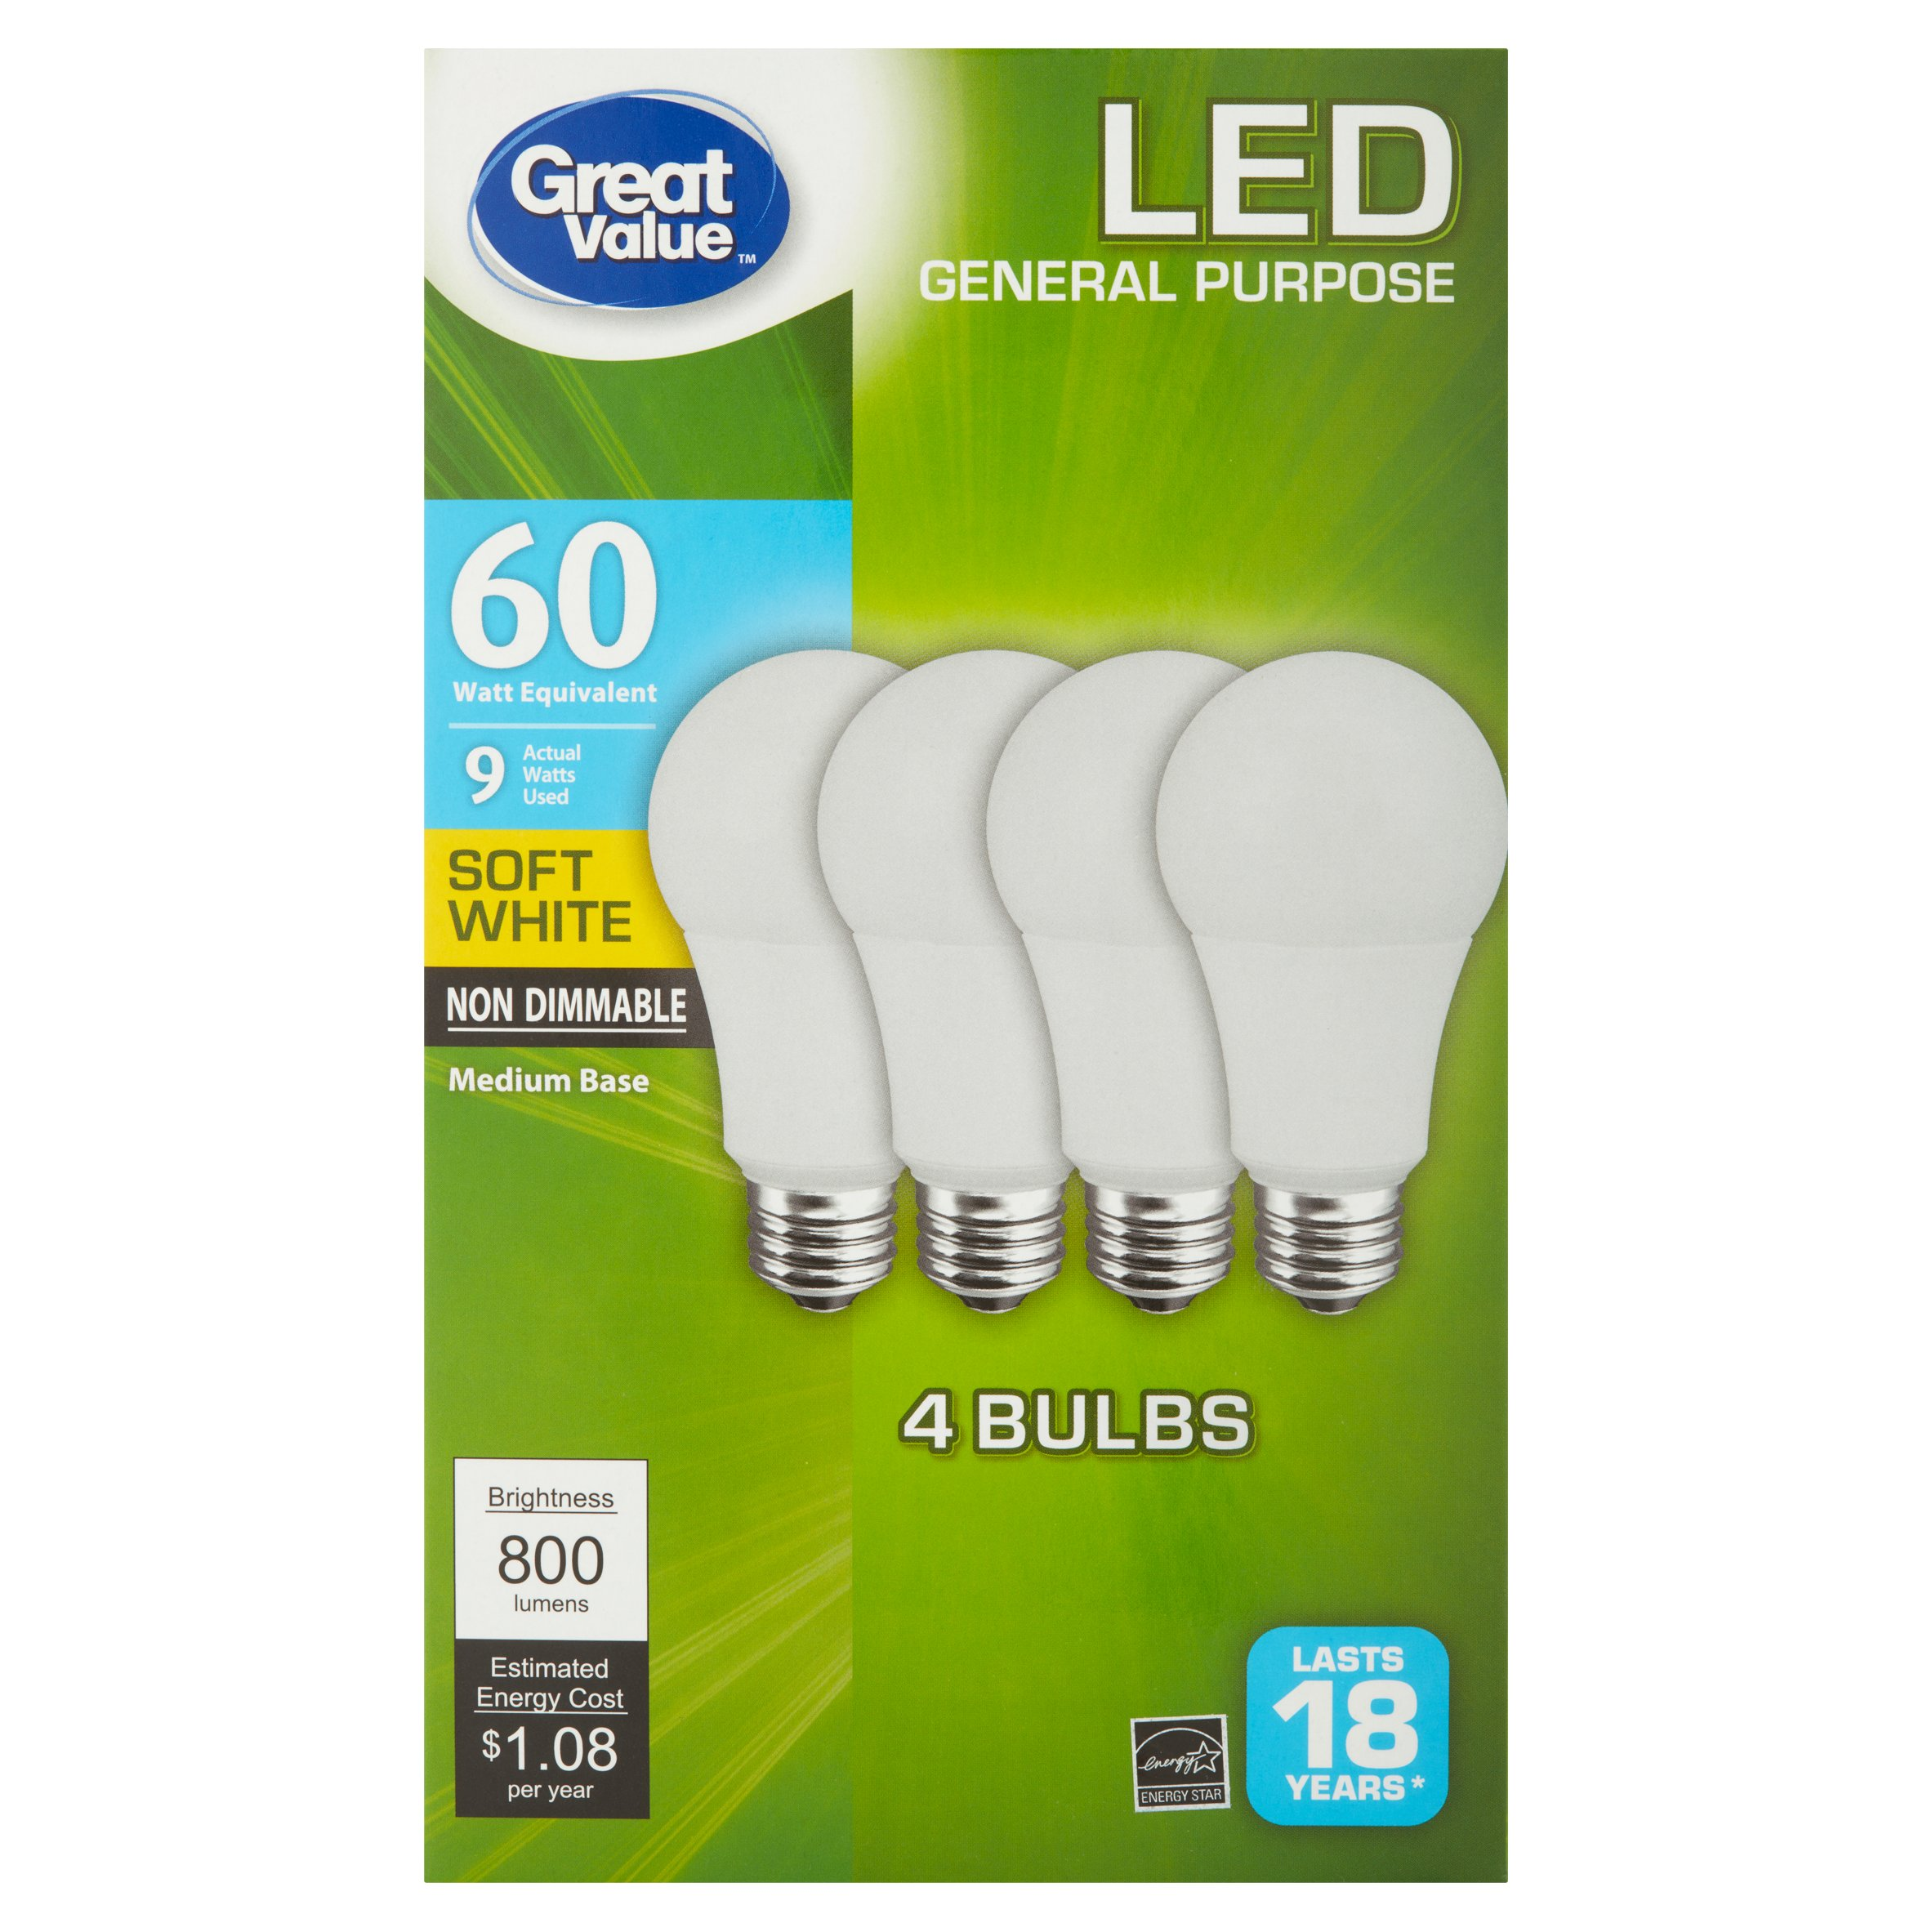 Great Value LED General Purpose Bulbs, 9W (60W Equivalent), Soft White, 4-count